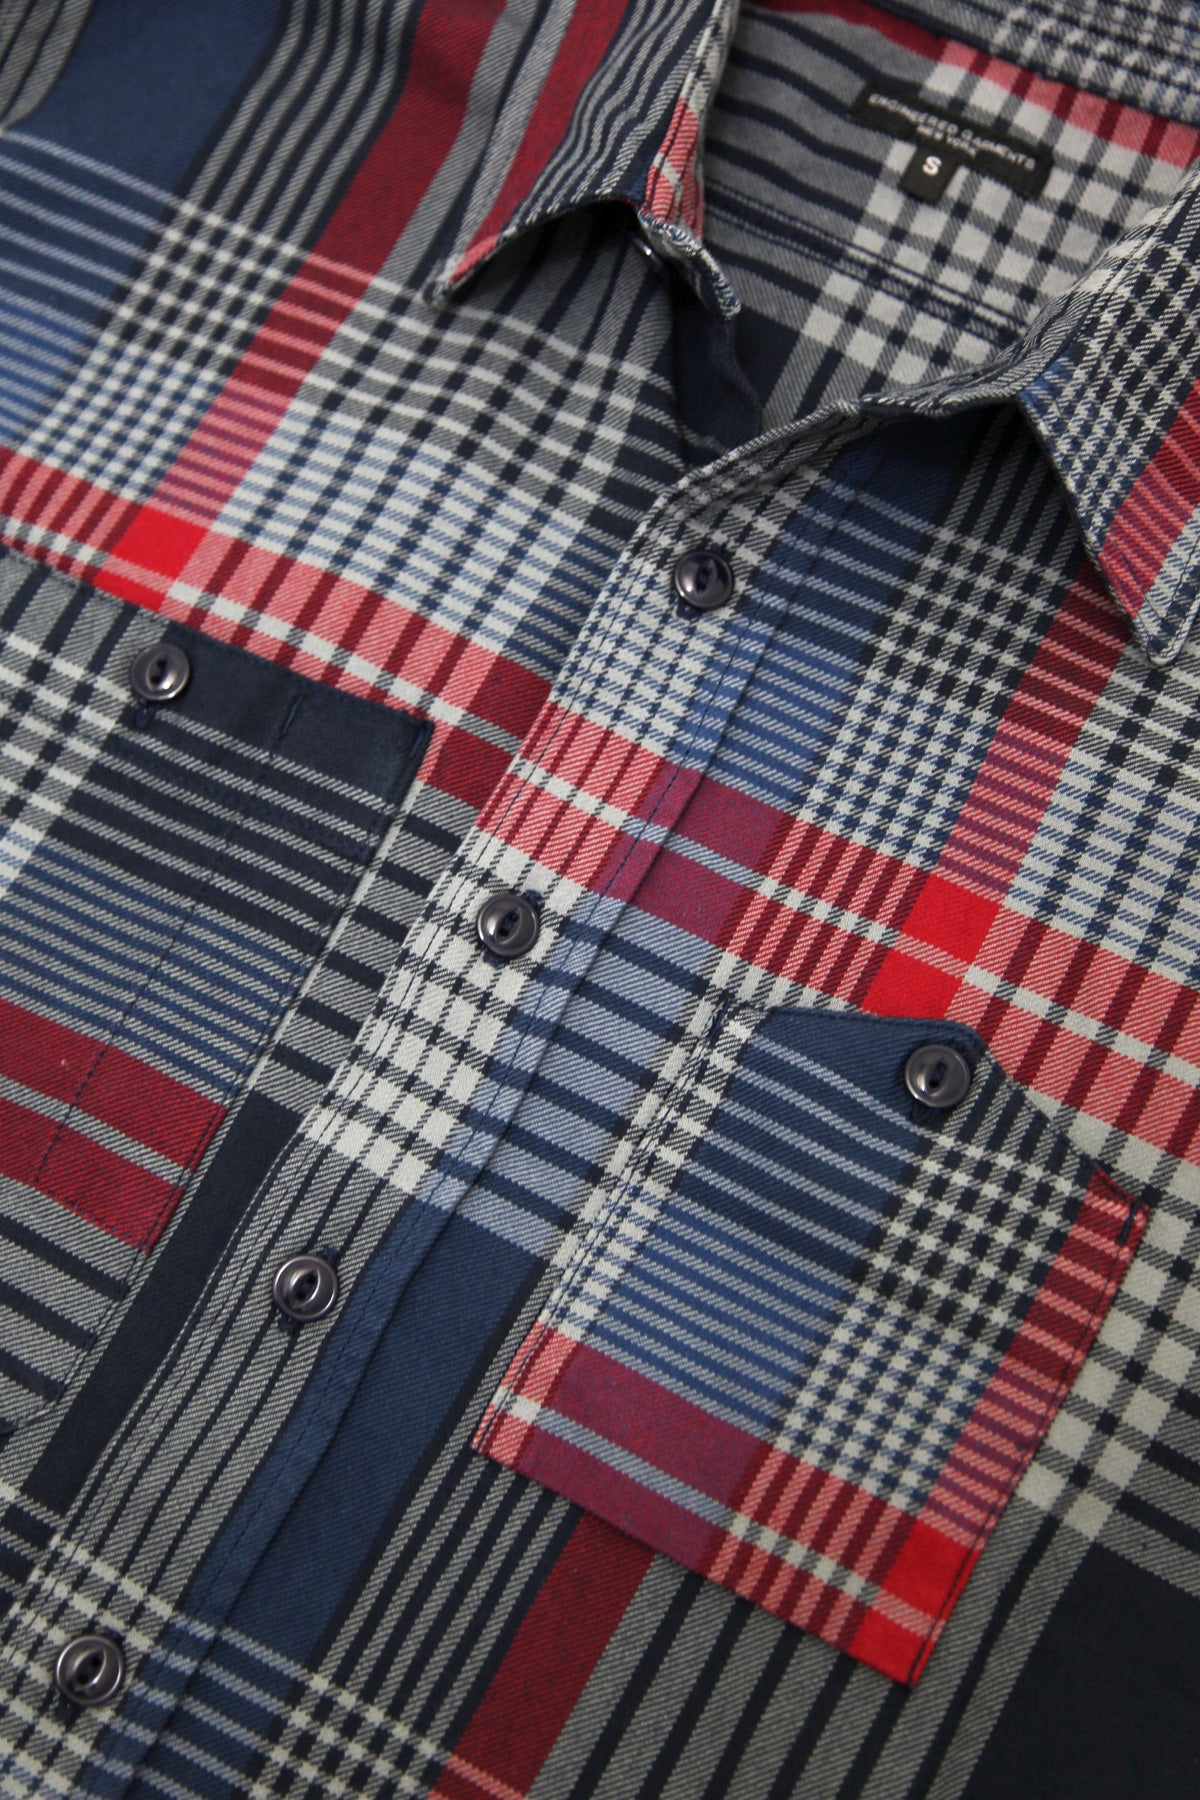 Engineered Garments - Work Shirt - Navy/Grey/Red Cotton Twill Plaid - Canoe Club